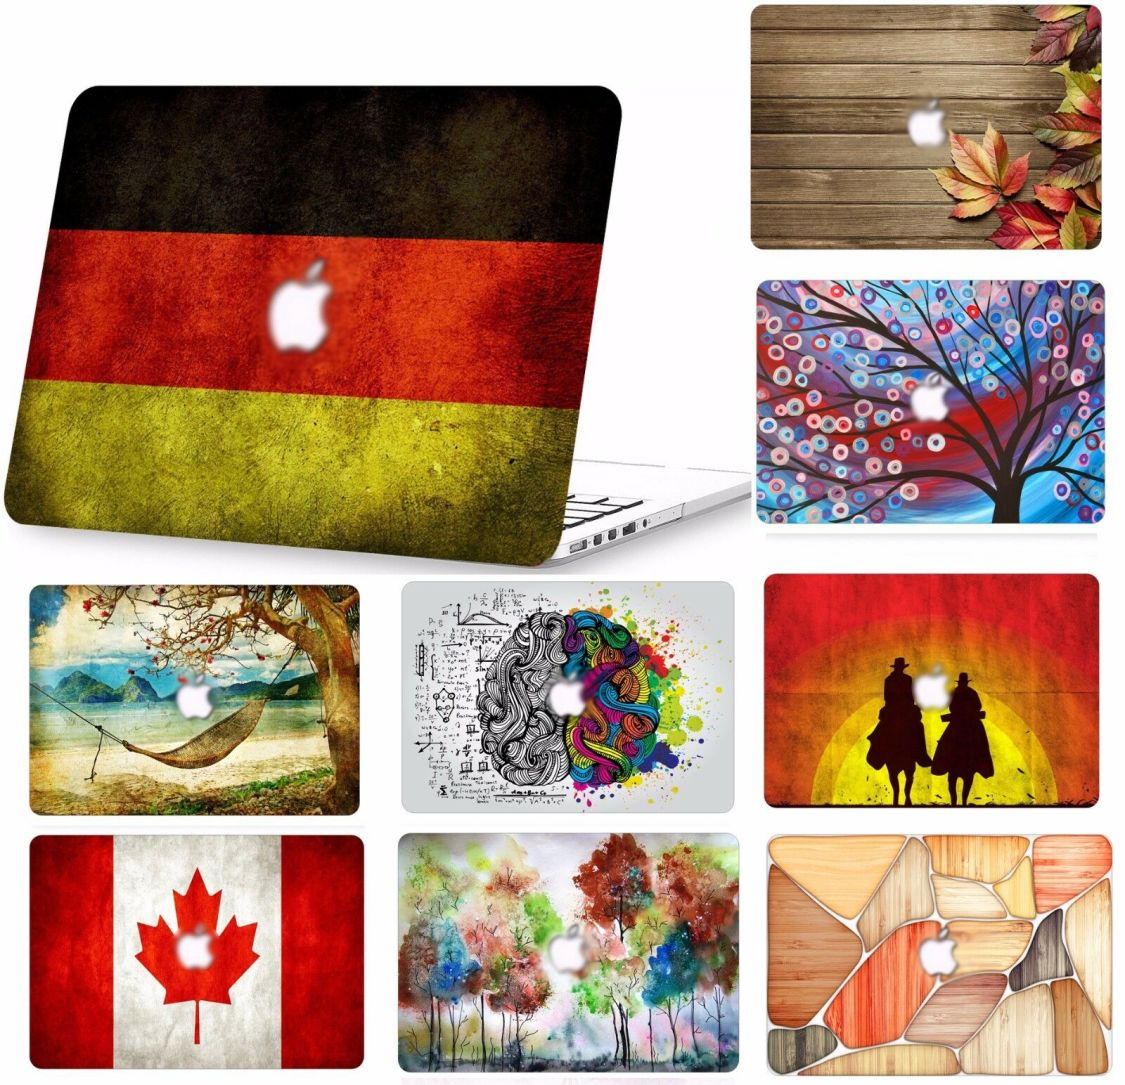 Laptop Hard Case für MacBook Pro Mac Air 11 13 15 Retina Schutzhülle Shell Etui